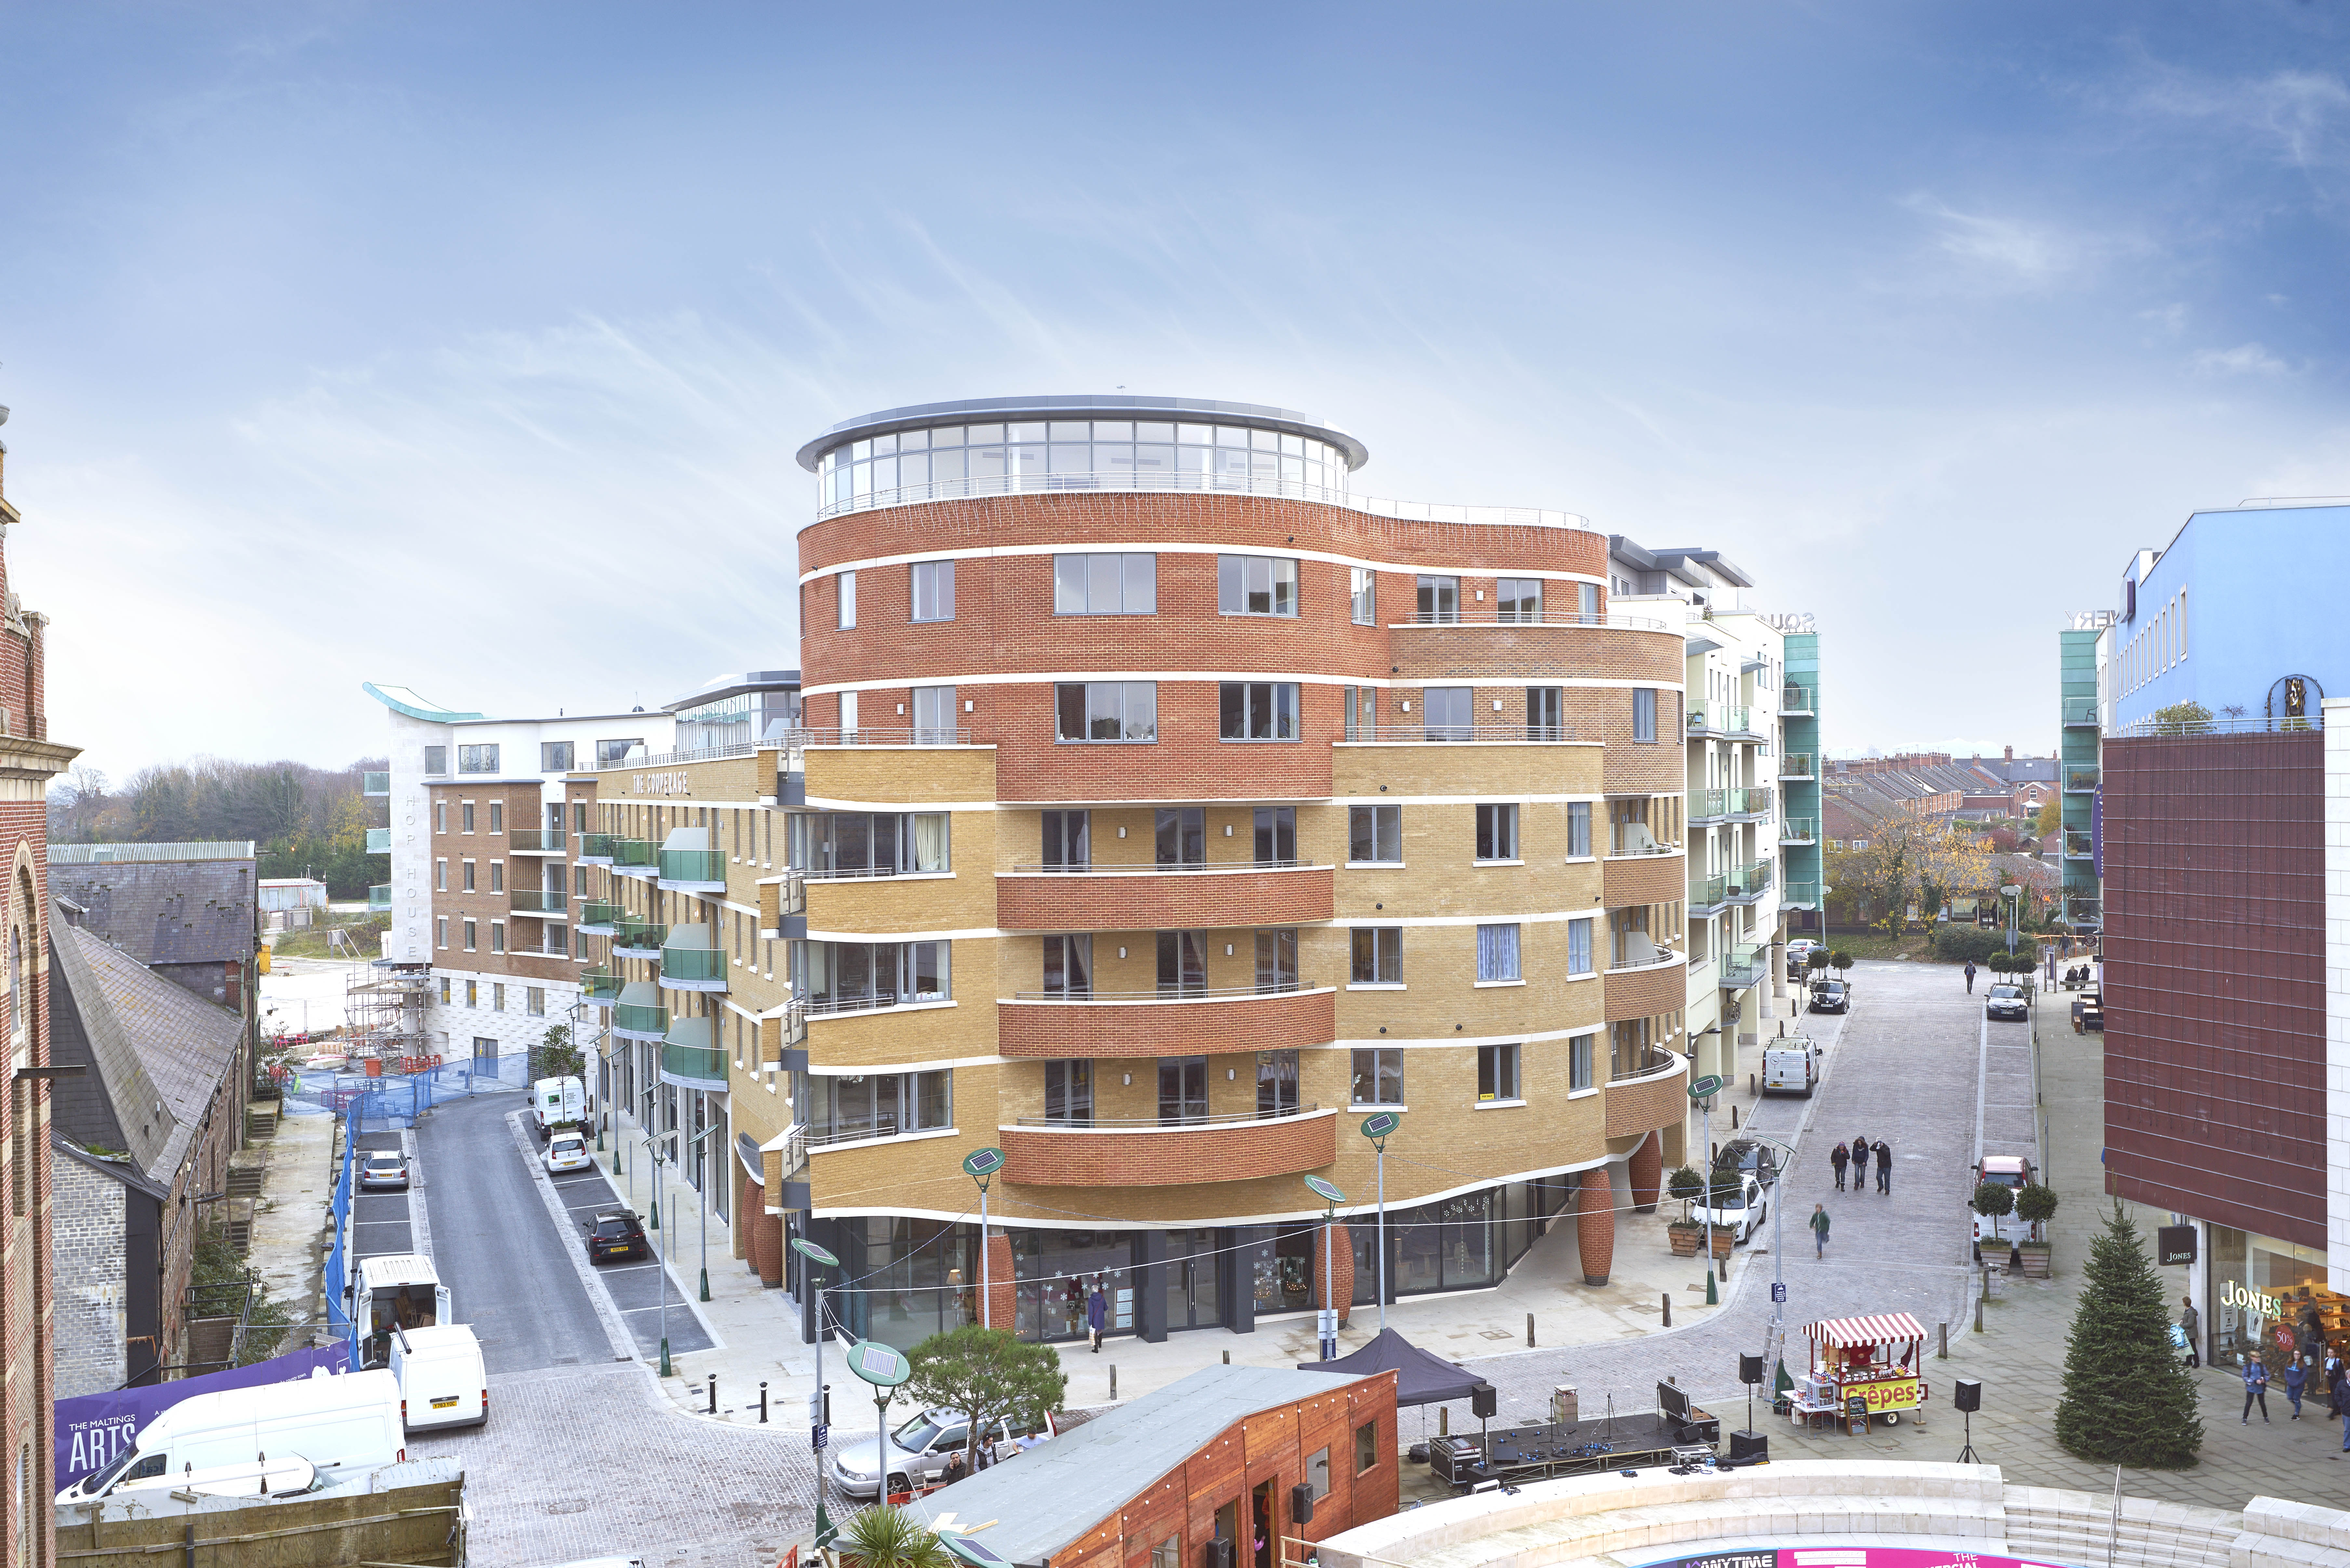 Sales success at Brewery Square